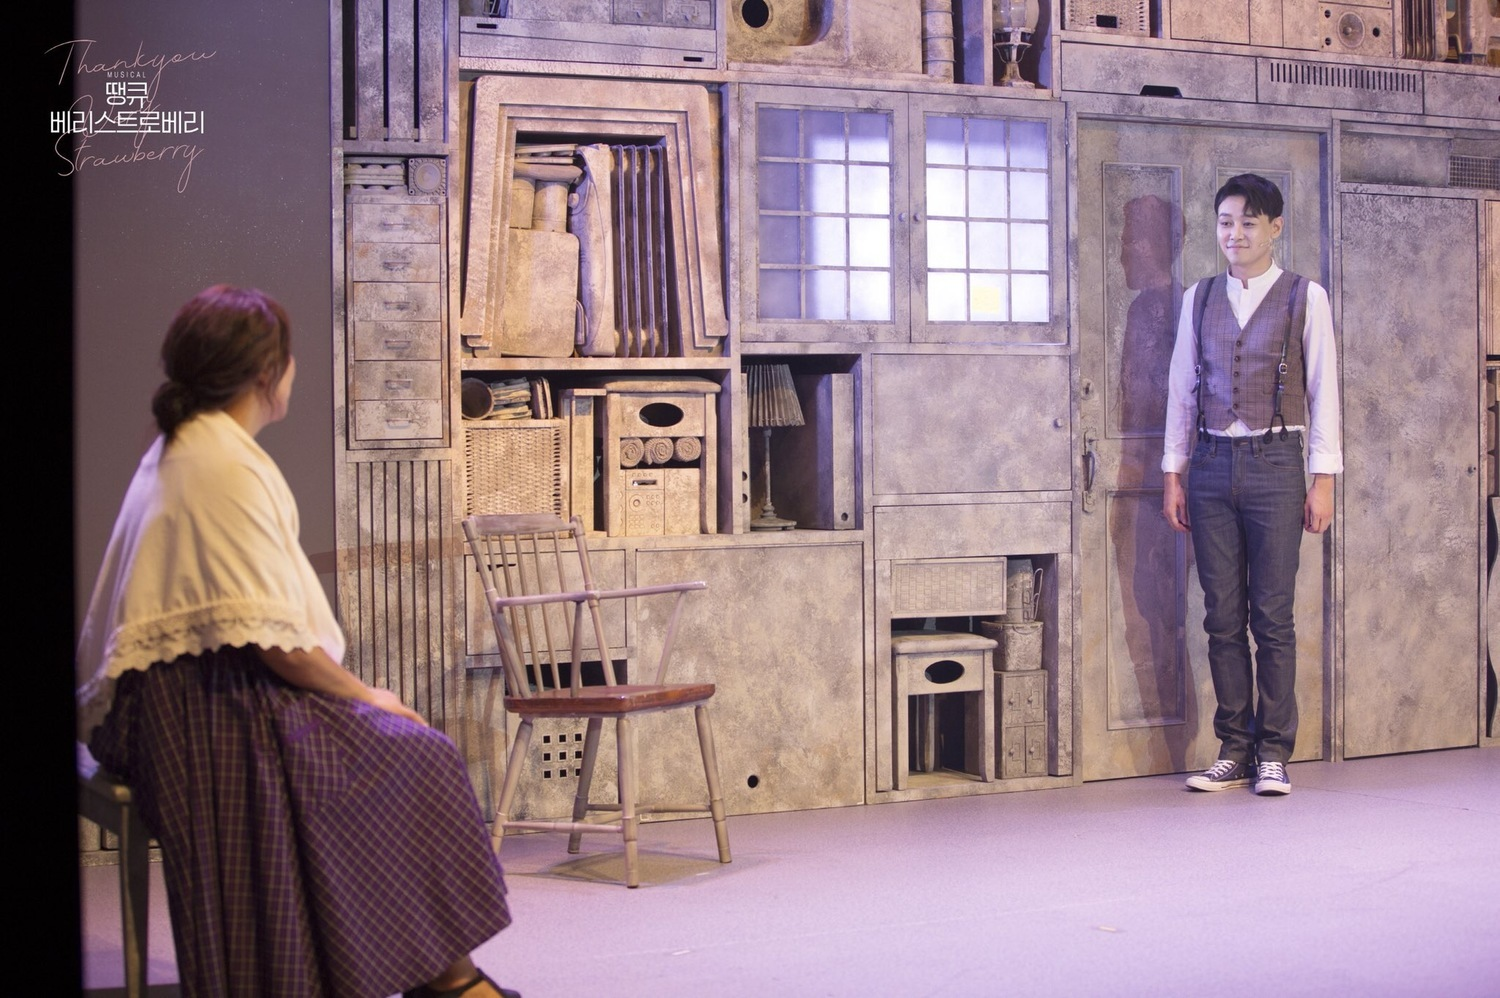 BWW Review: Memoirs of Happiness, THANK YOU VERY STRAWBERRY at Artone Theatre